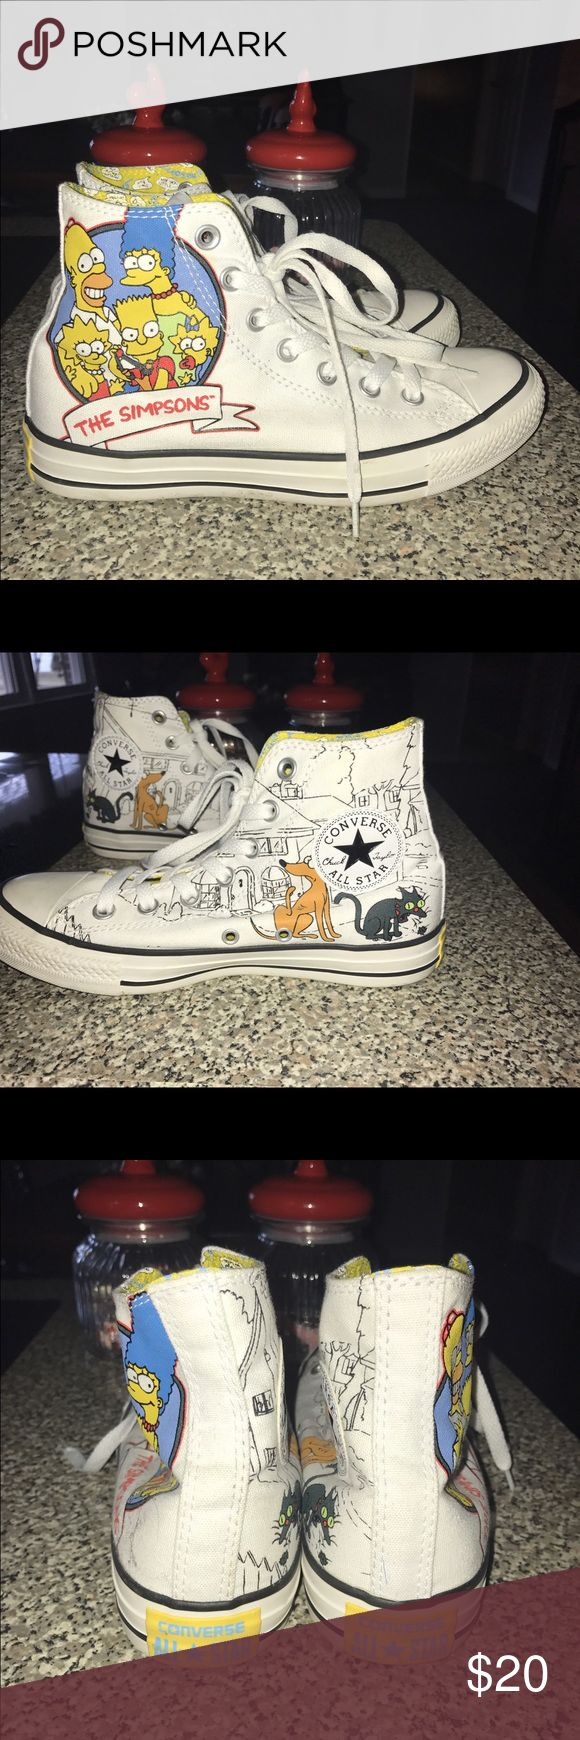 The Simpsons converse Special 25th Anniversary Simpsons converse! Only worn once or twice and barely has any scuff marks, excellent condition! Make me a offer size: 5.5 in men's or 7.5 in women's Converse Shoes Sneakers